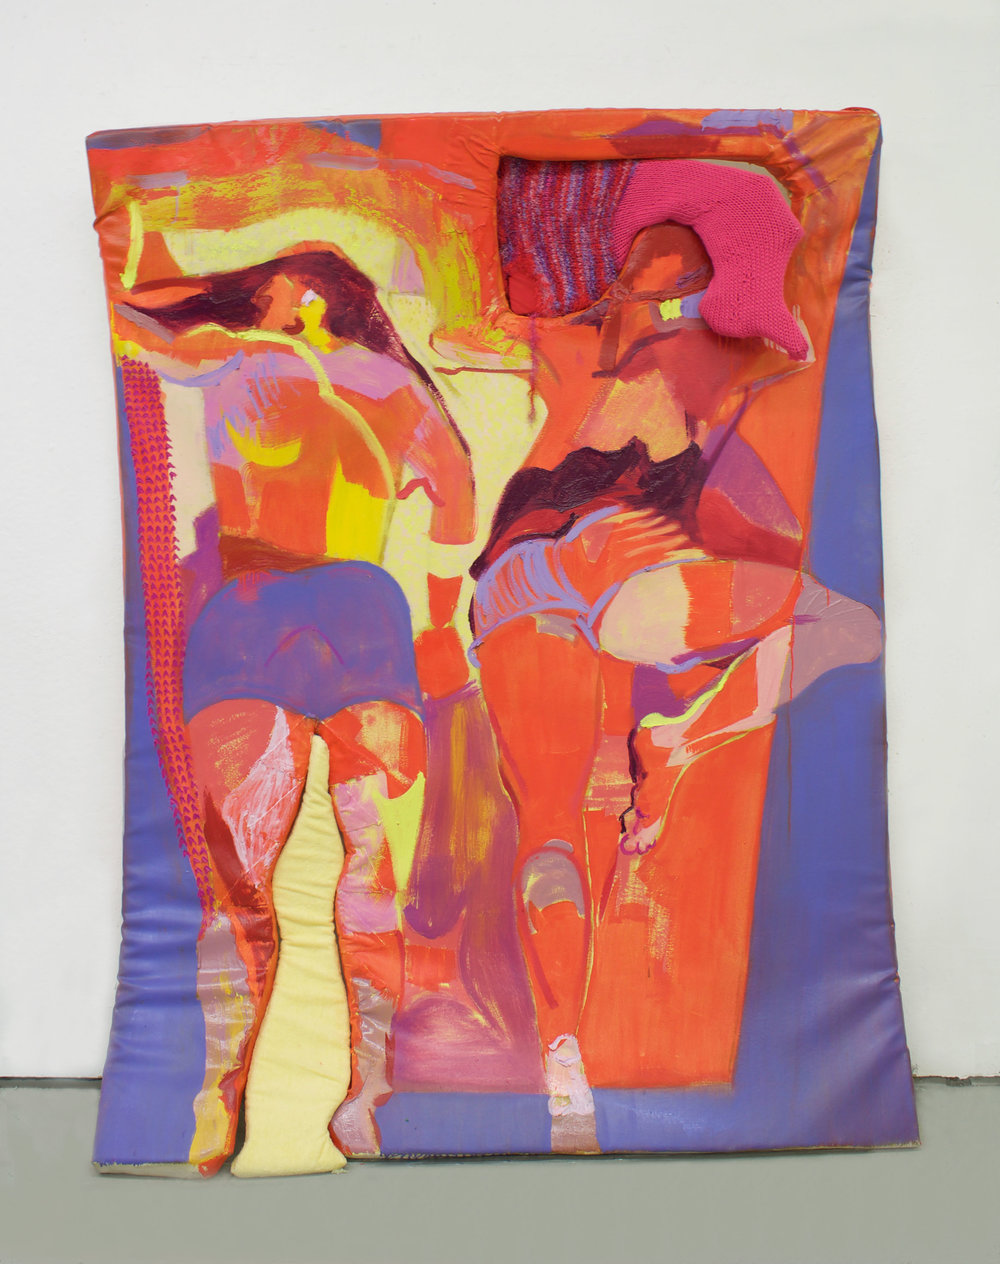 <b>Towel Tight Between Your Red Hot Thighs</b><br>Oil on canvas, wrapped upholstery foam with knit fabric wrapped upholstery foam inserts<br>6 ft x 4.5 ft x 8 in